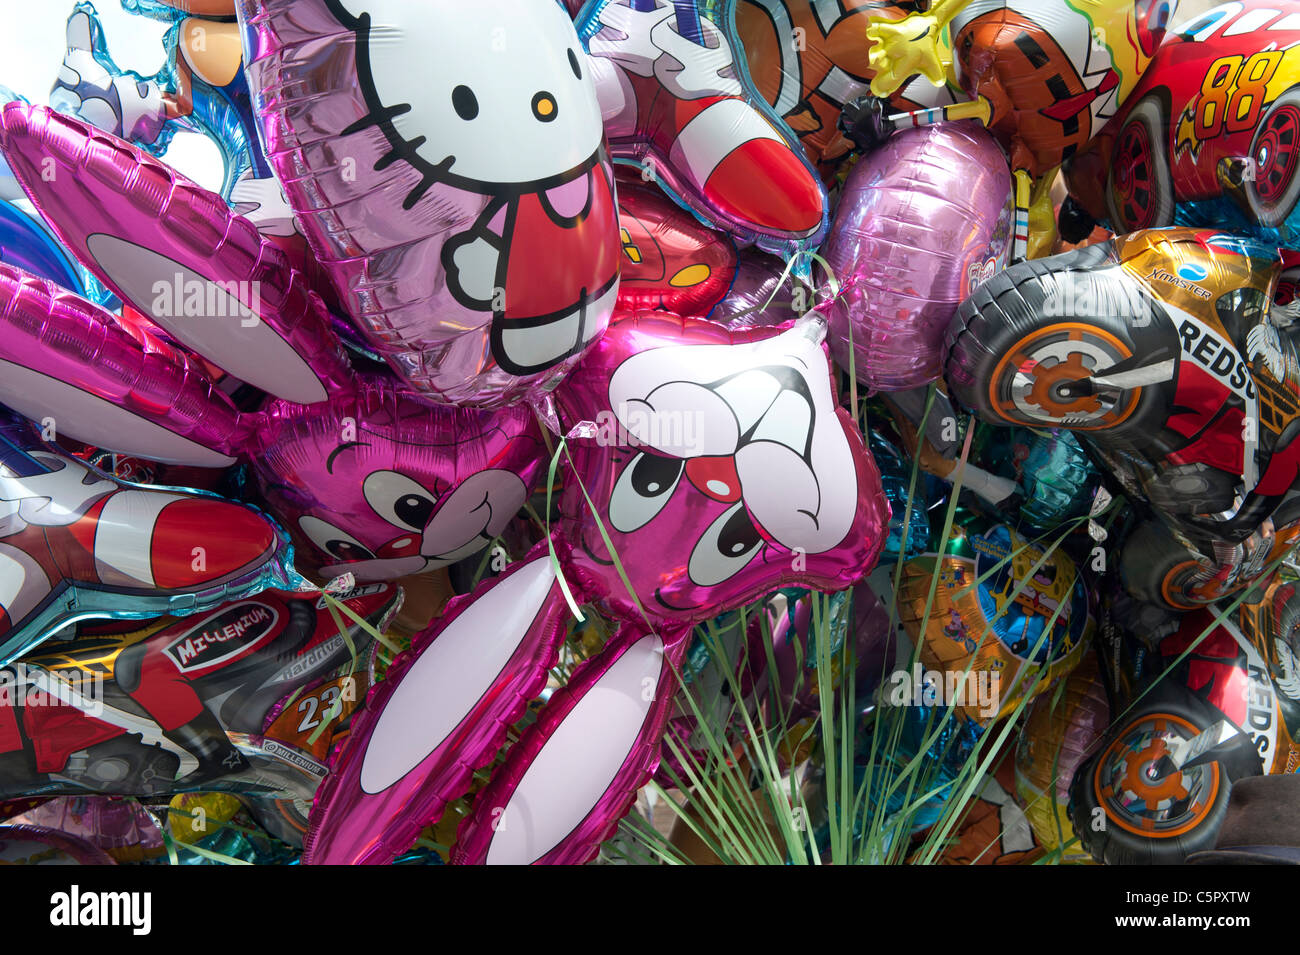 A bunch of inflatable helium balloons featuring children's characters sold on a street in Truro, Conrwall. - Stock Image